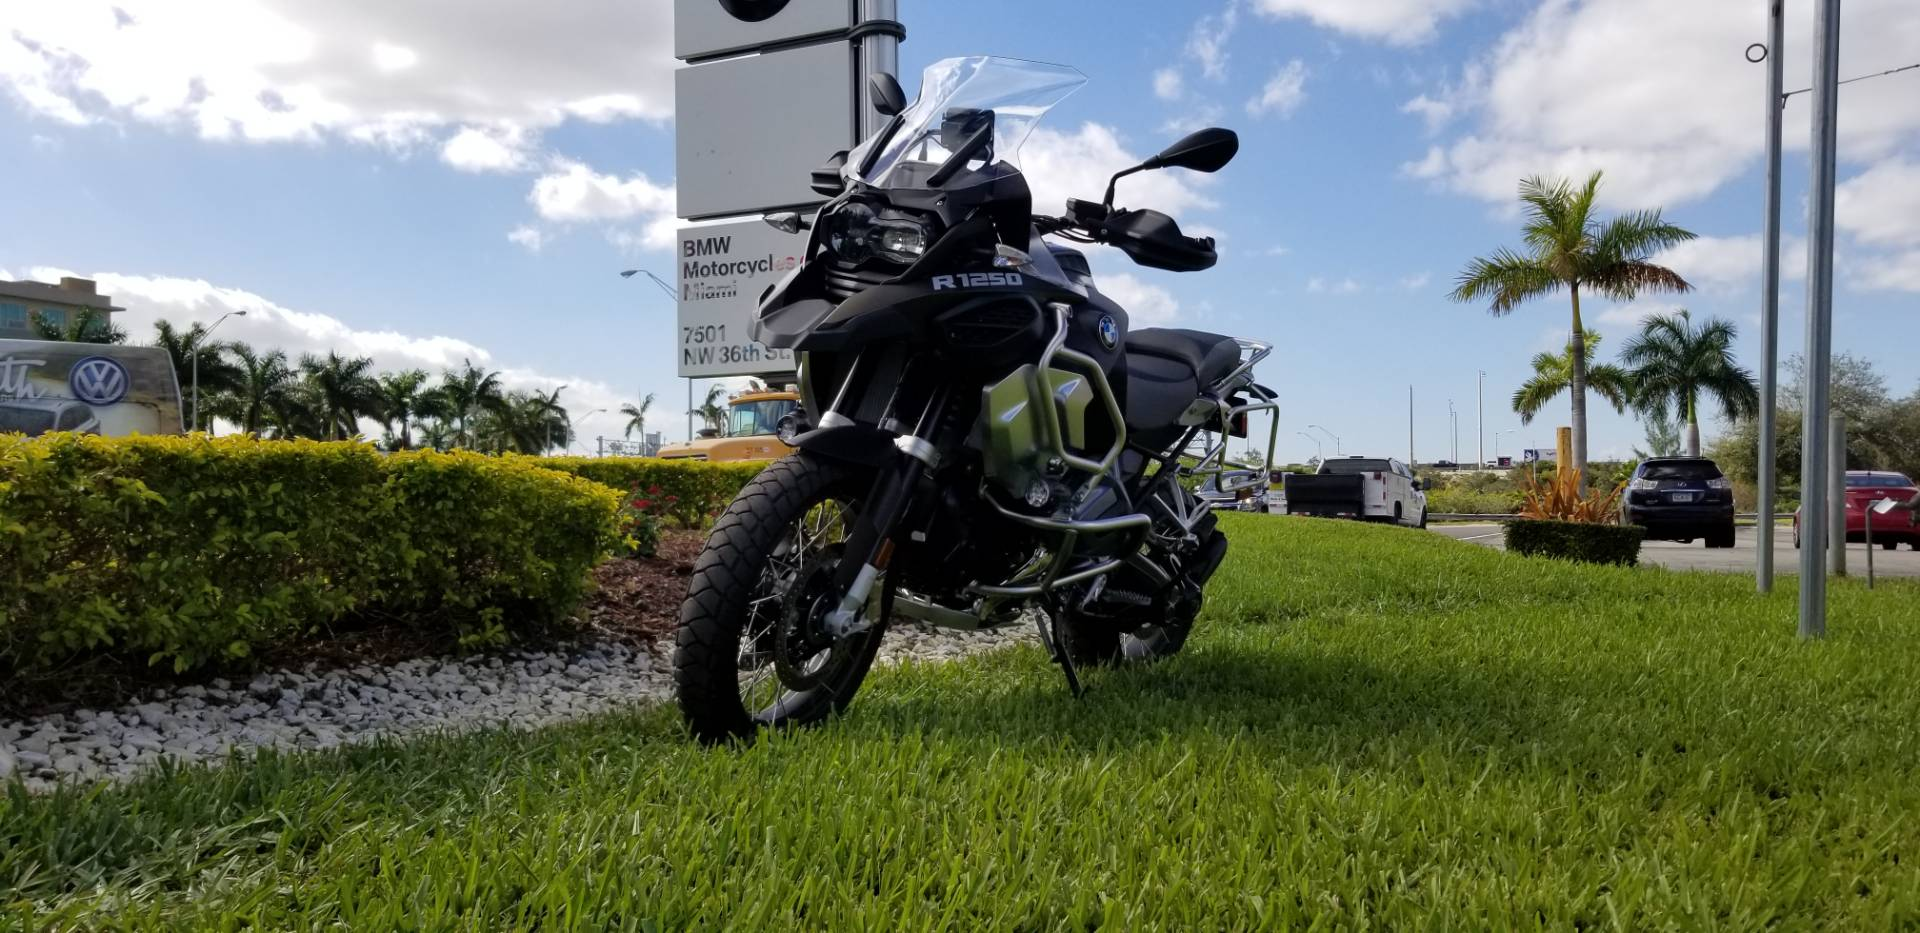 New 2019 BMW R 1250 GSA for sale, BMW for sale R 1250GSA, BMW Motorcycle R1250GSA, new BMW 1250GS Adventure, R1250GSAdventure, BMW Adventure, BMW Motorcycles of Miami, Motorcycles of Miami - Photo 2